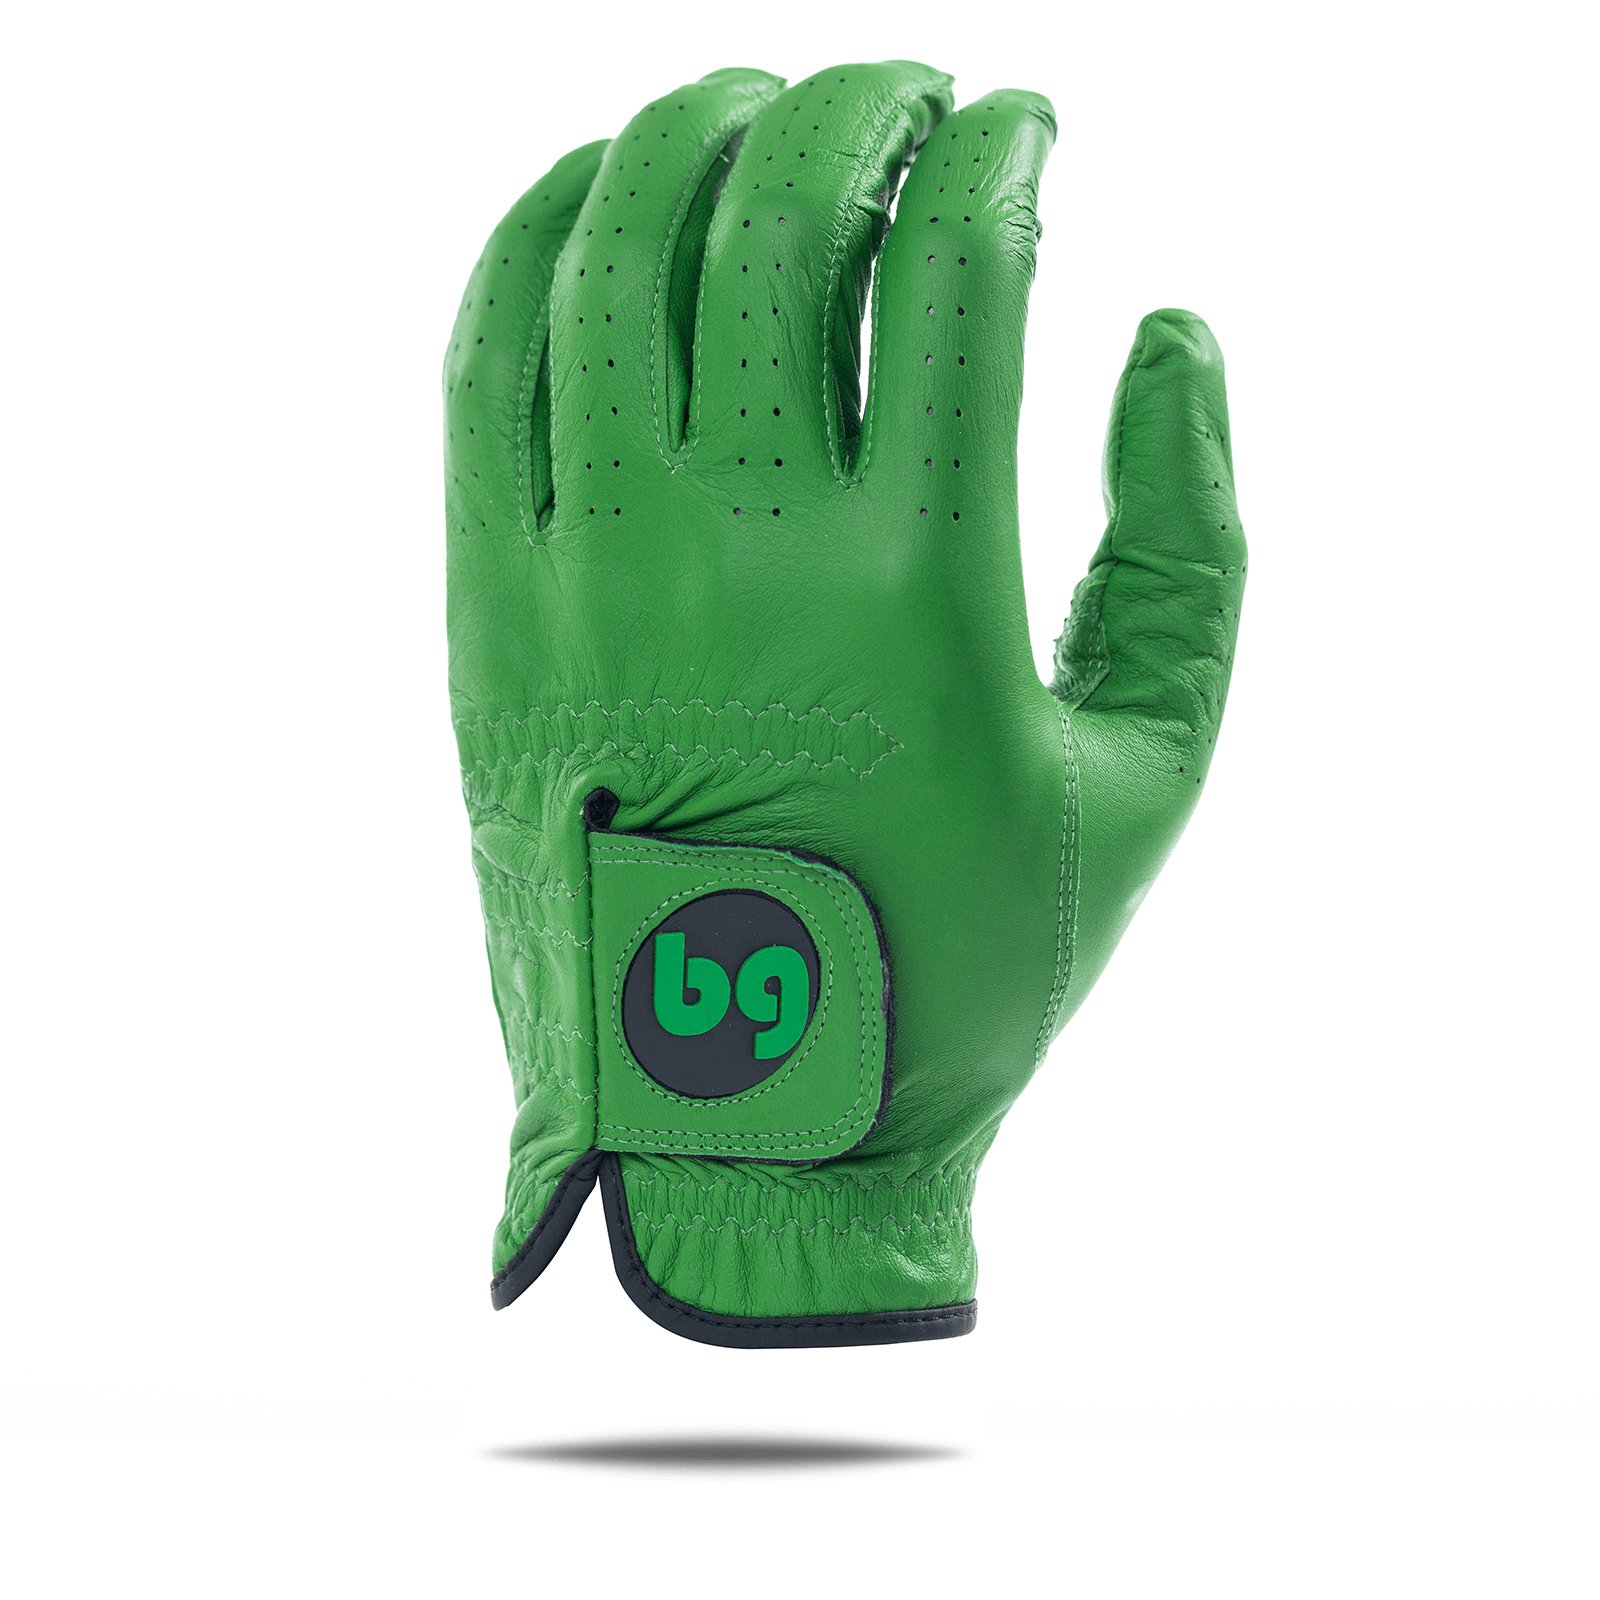 Green Elite Tour Golf Glove